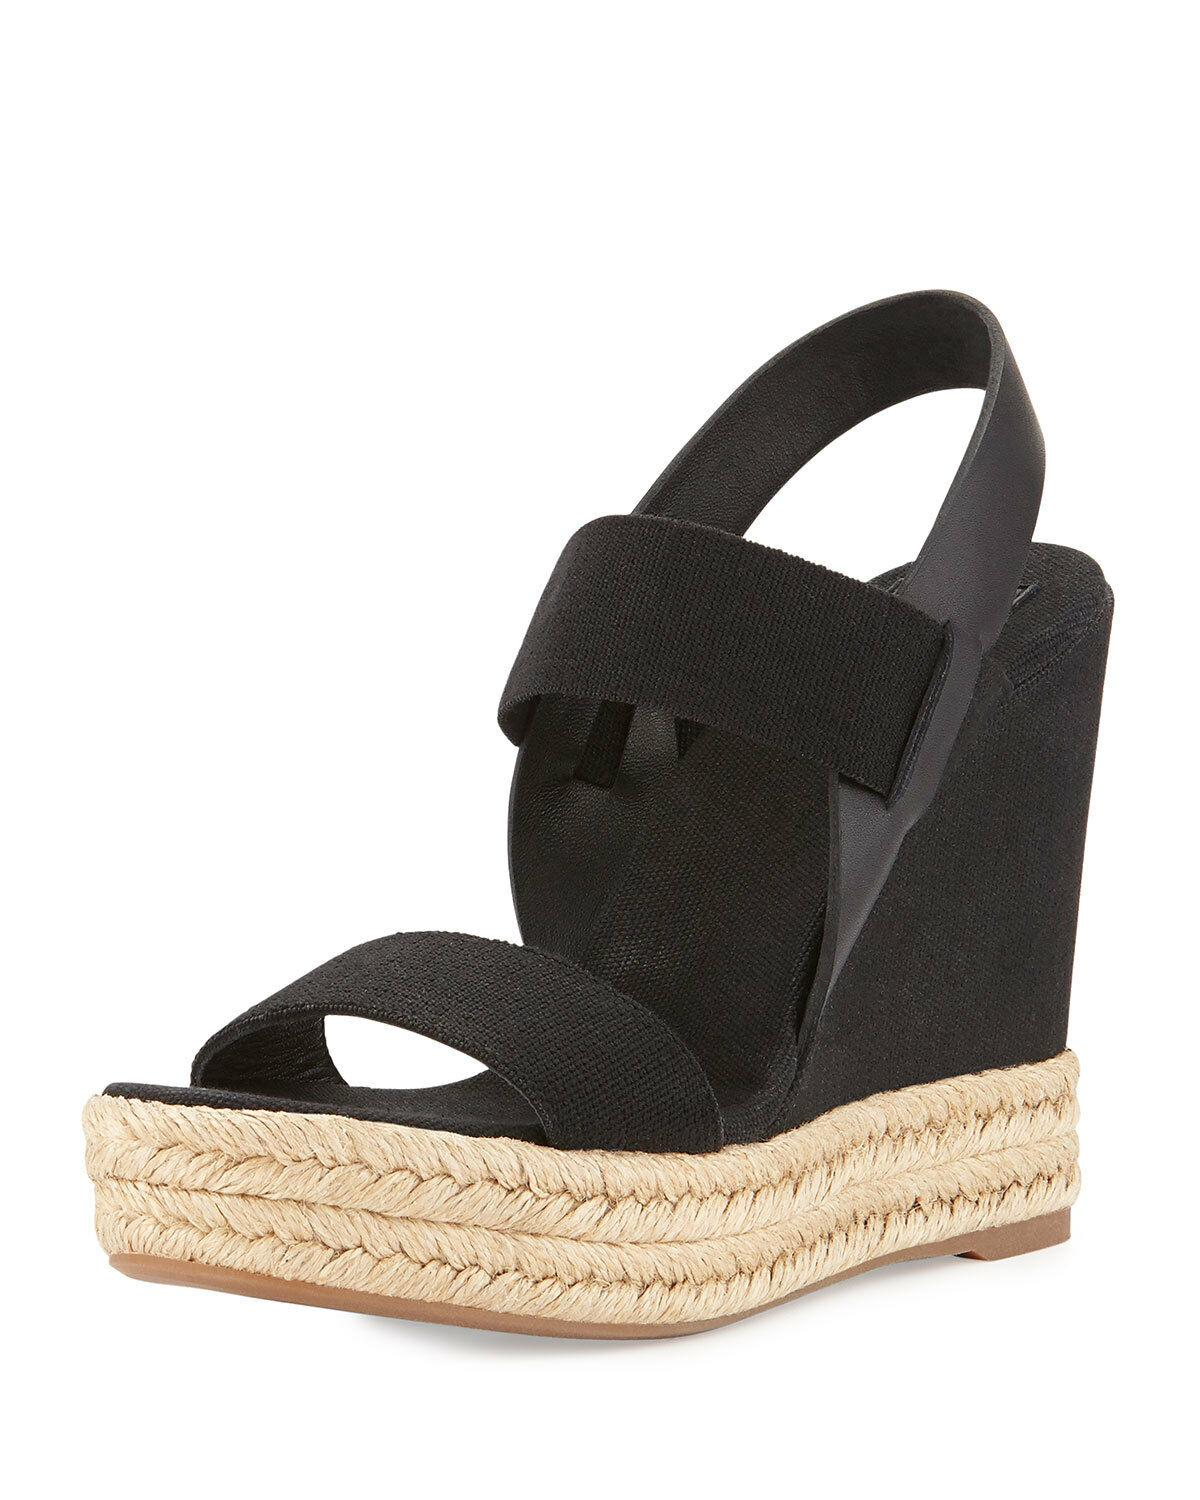 Sz 9 Tory Burch Black Two Bands Canvas Leather Wedge Espadrille Sandal Shoe